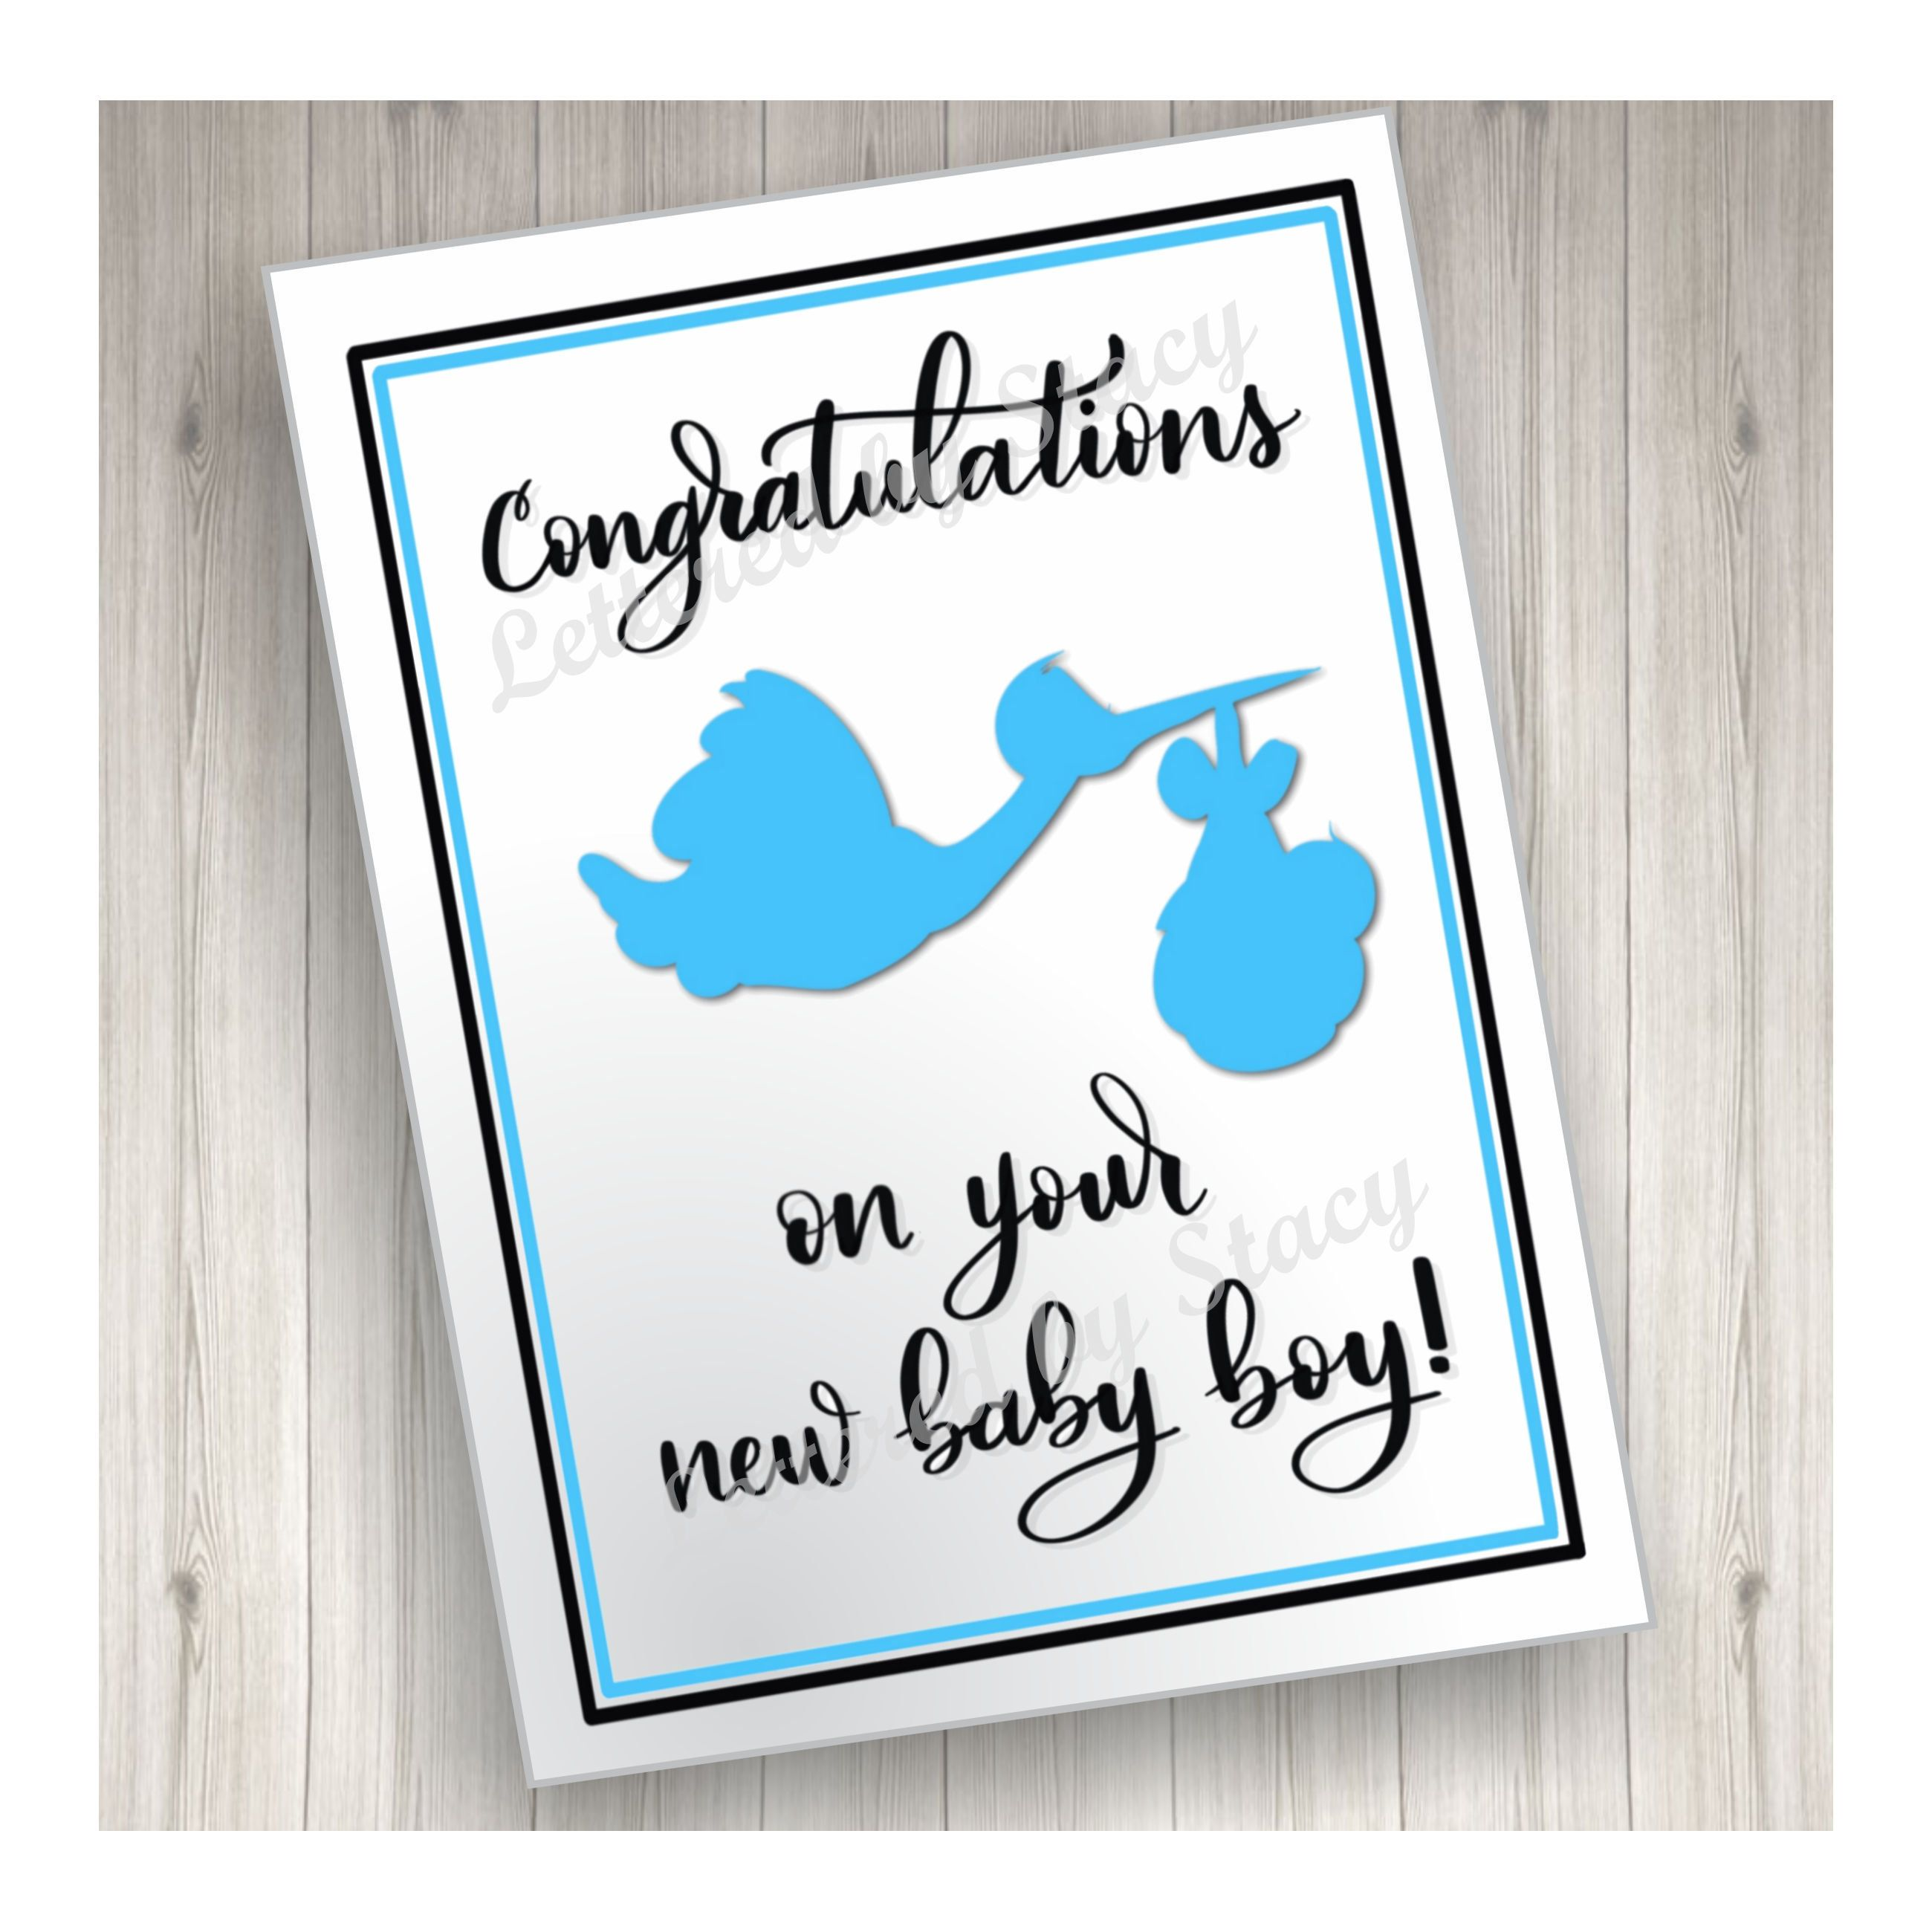 New Baby Card Congratulations On Your New Baby Boy With Blue